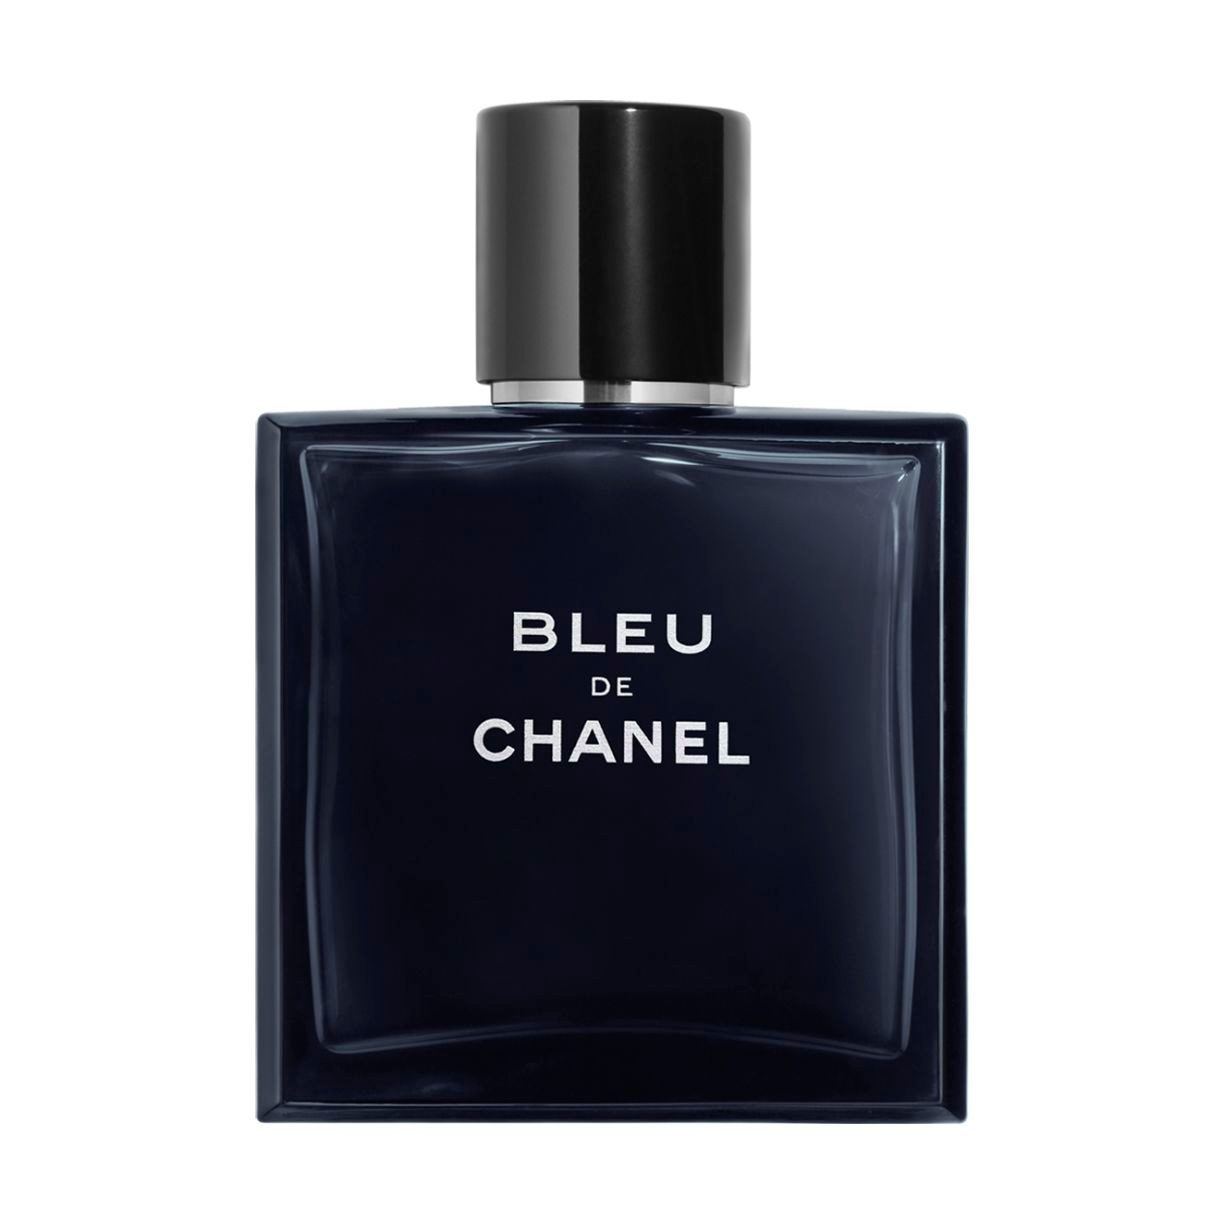 BLEU DE CHANEL EAU DE TOILETTE SPRAY